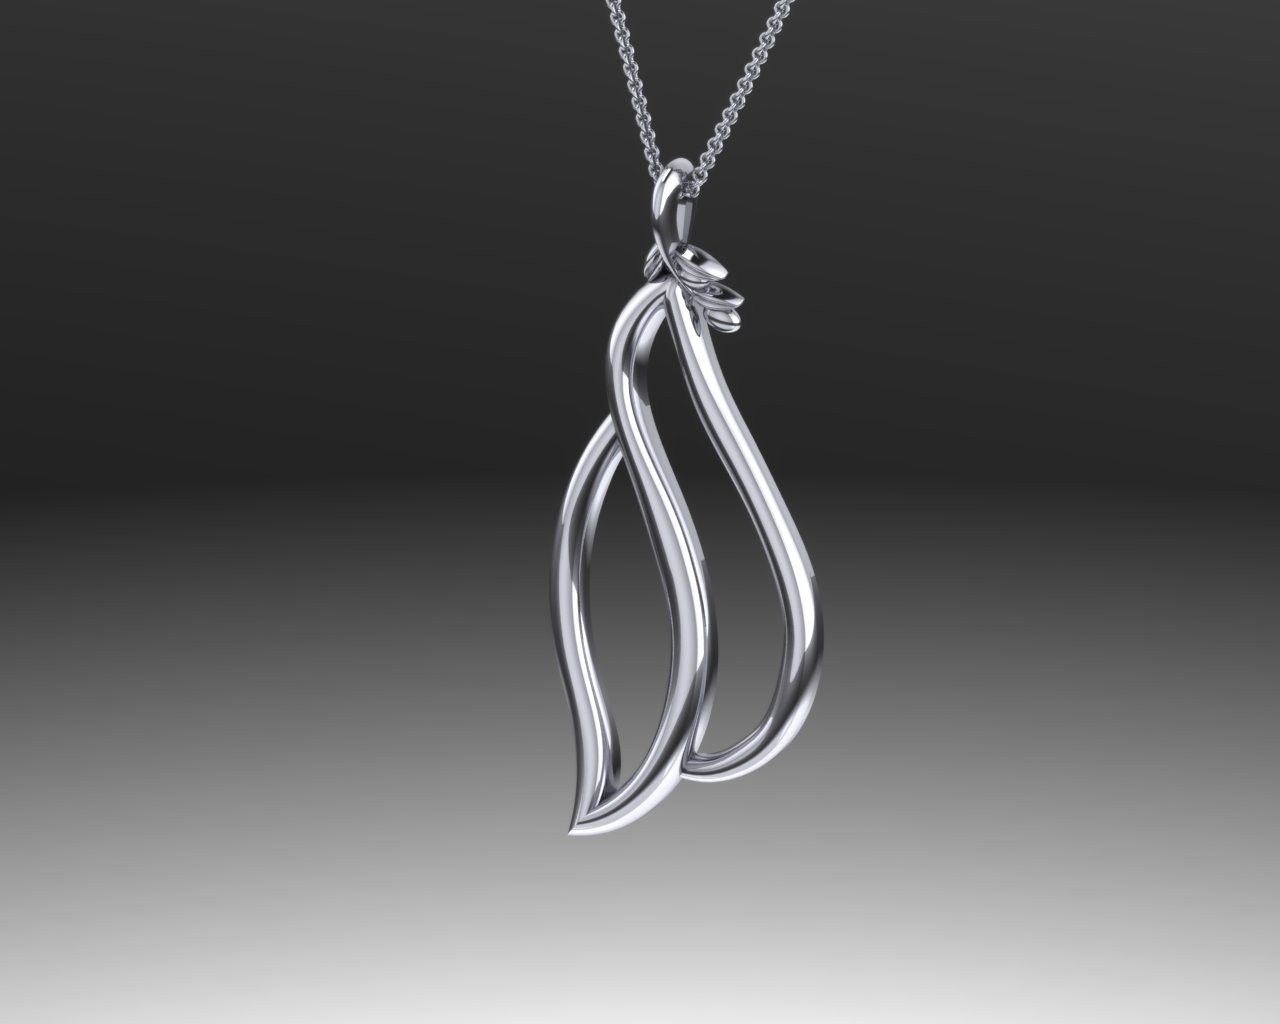 Silver dove necklaces sterling silver modern dove pendant silver dove necklaces sterling silver modern dove pendant mozeypictures Image collections